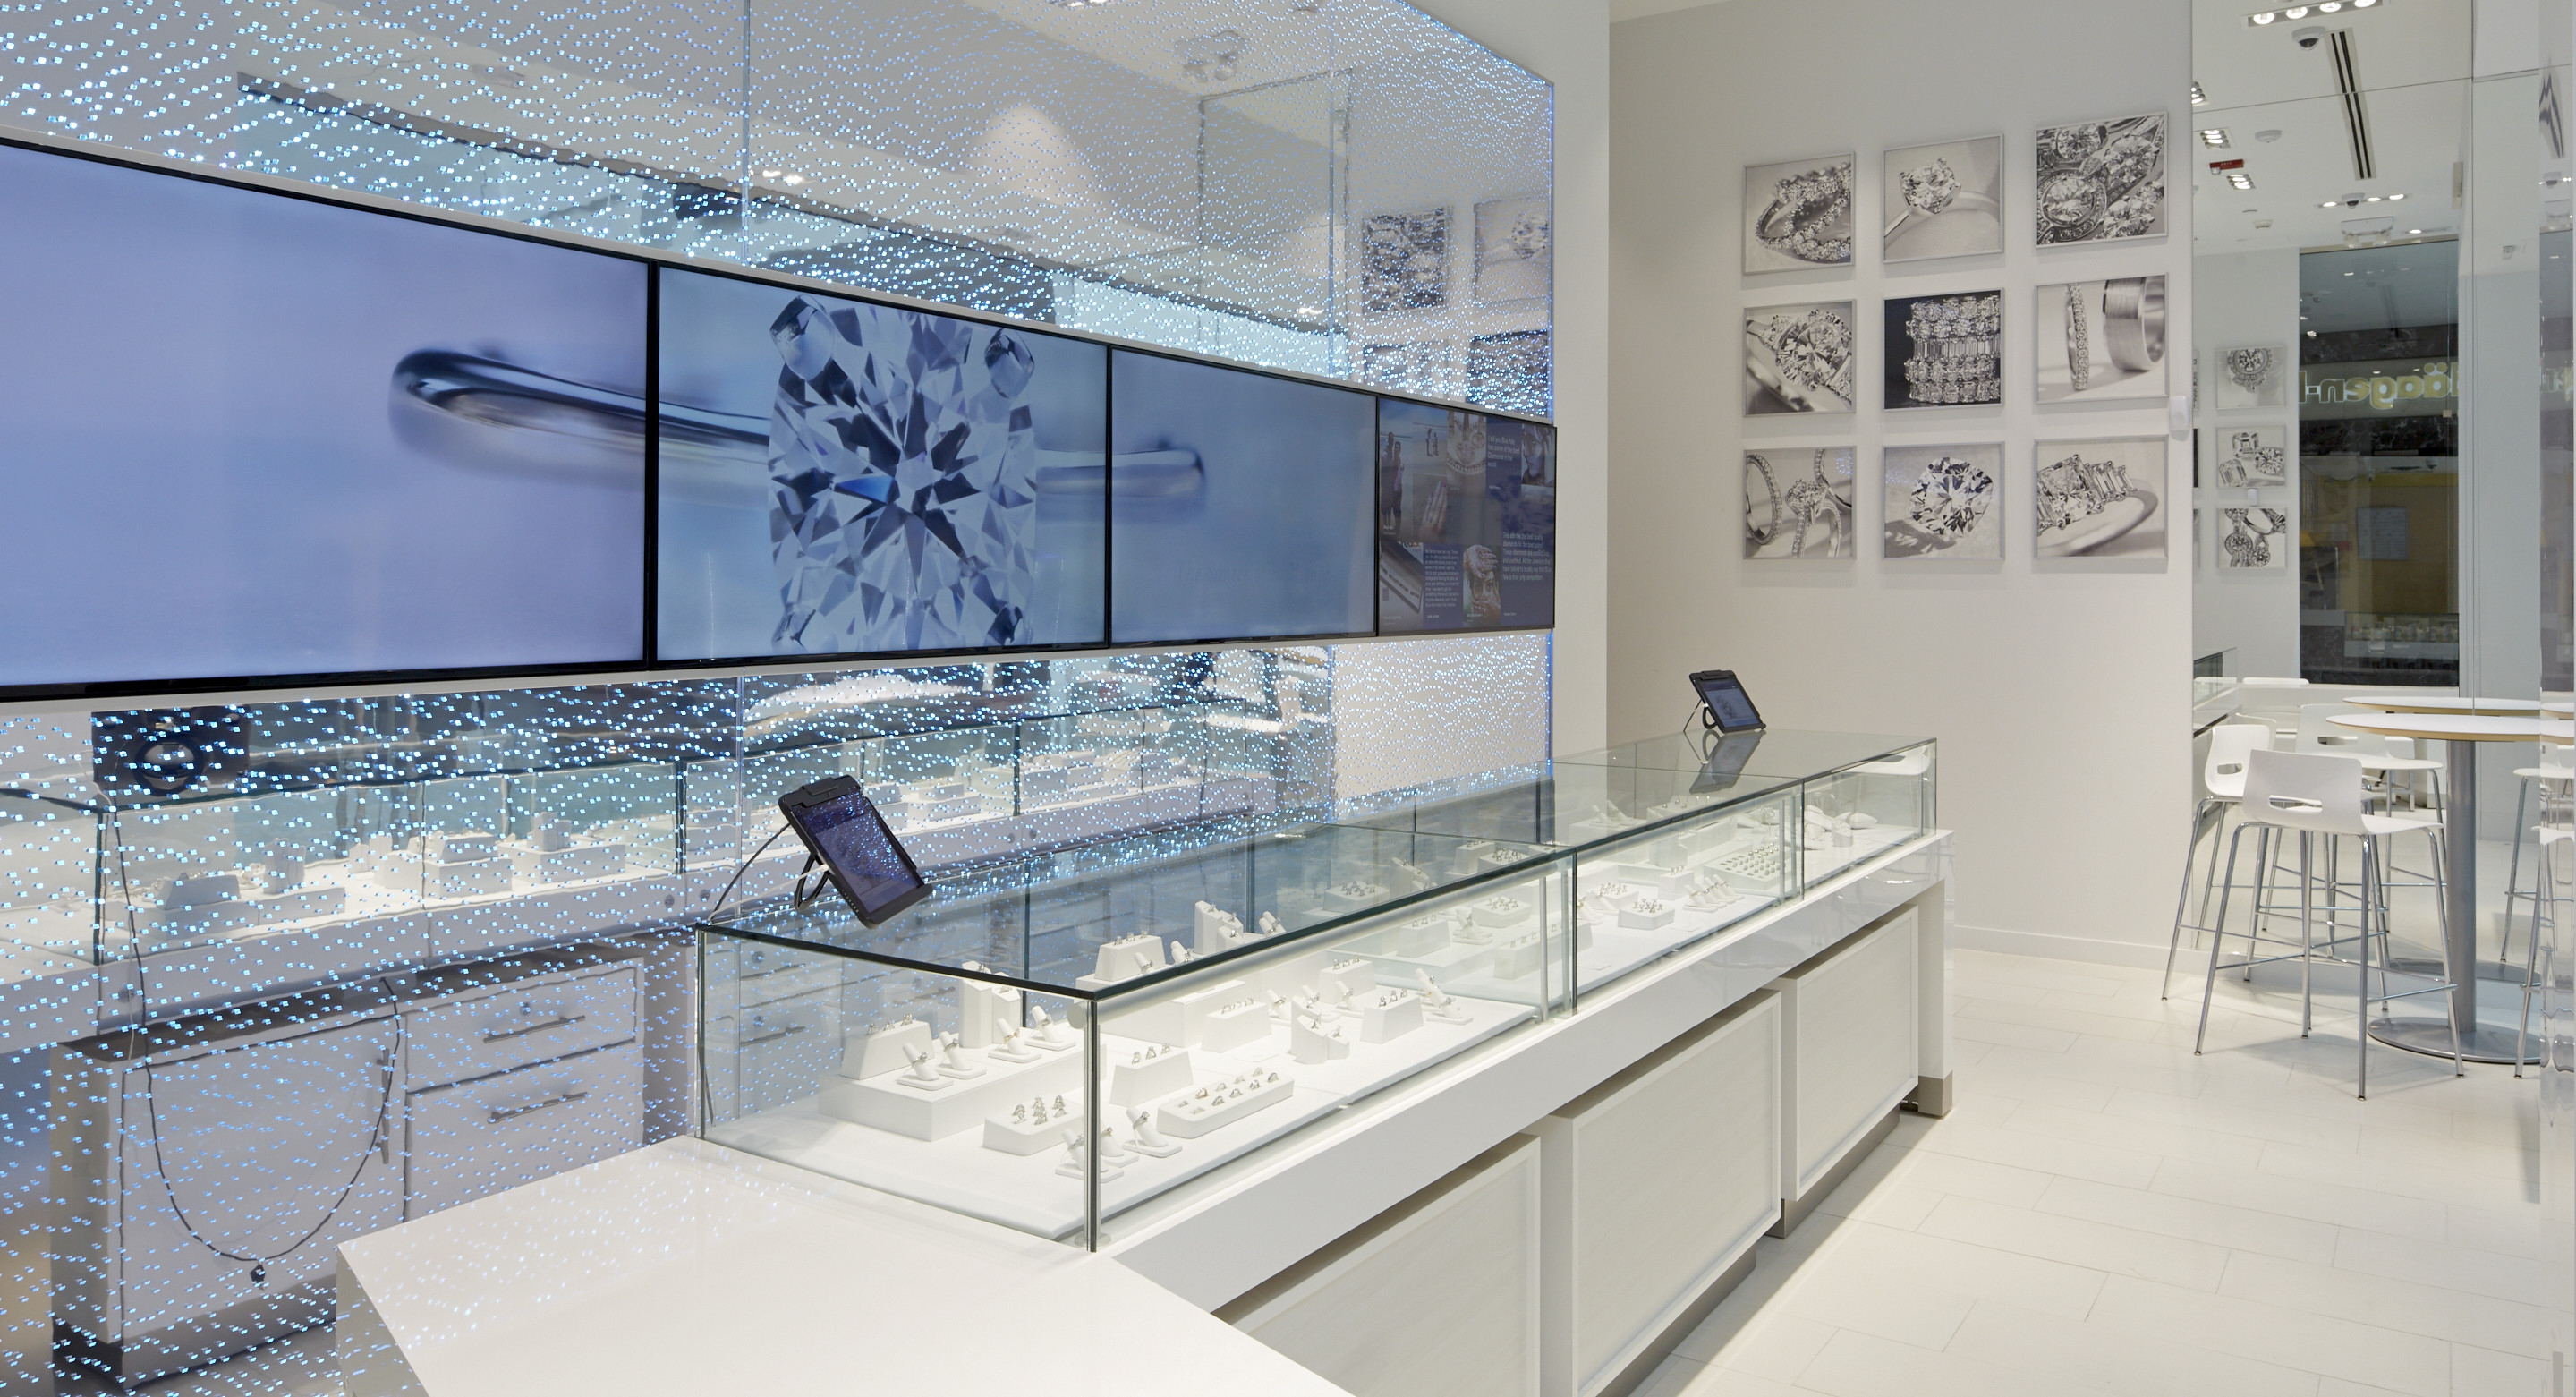 web jeweler blue nile to open physical store outside